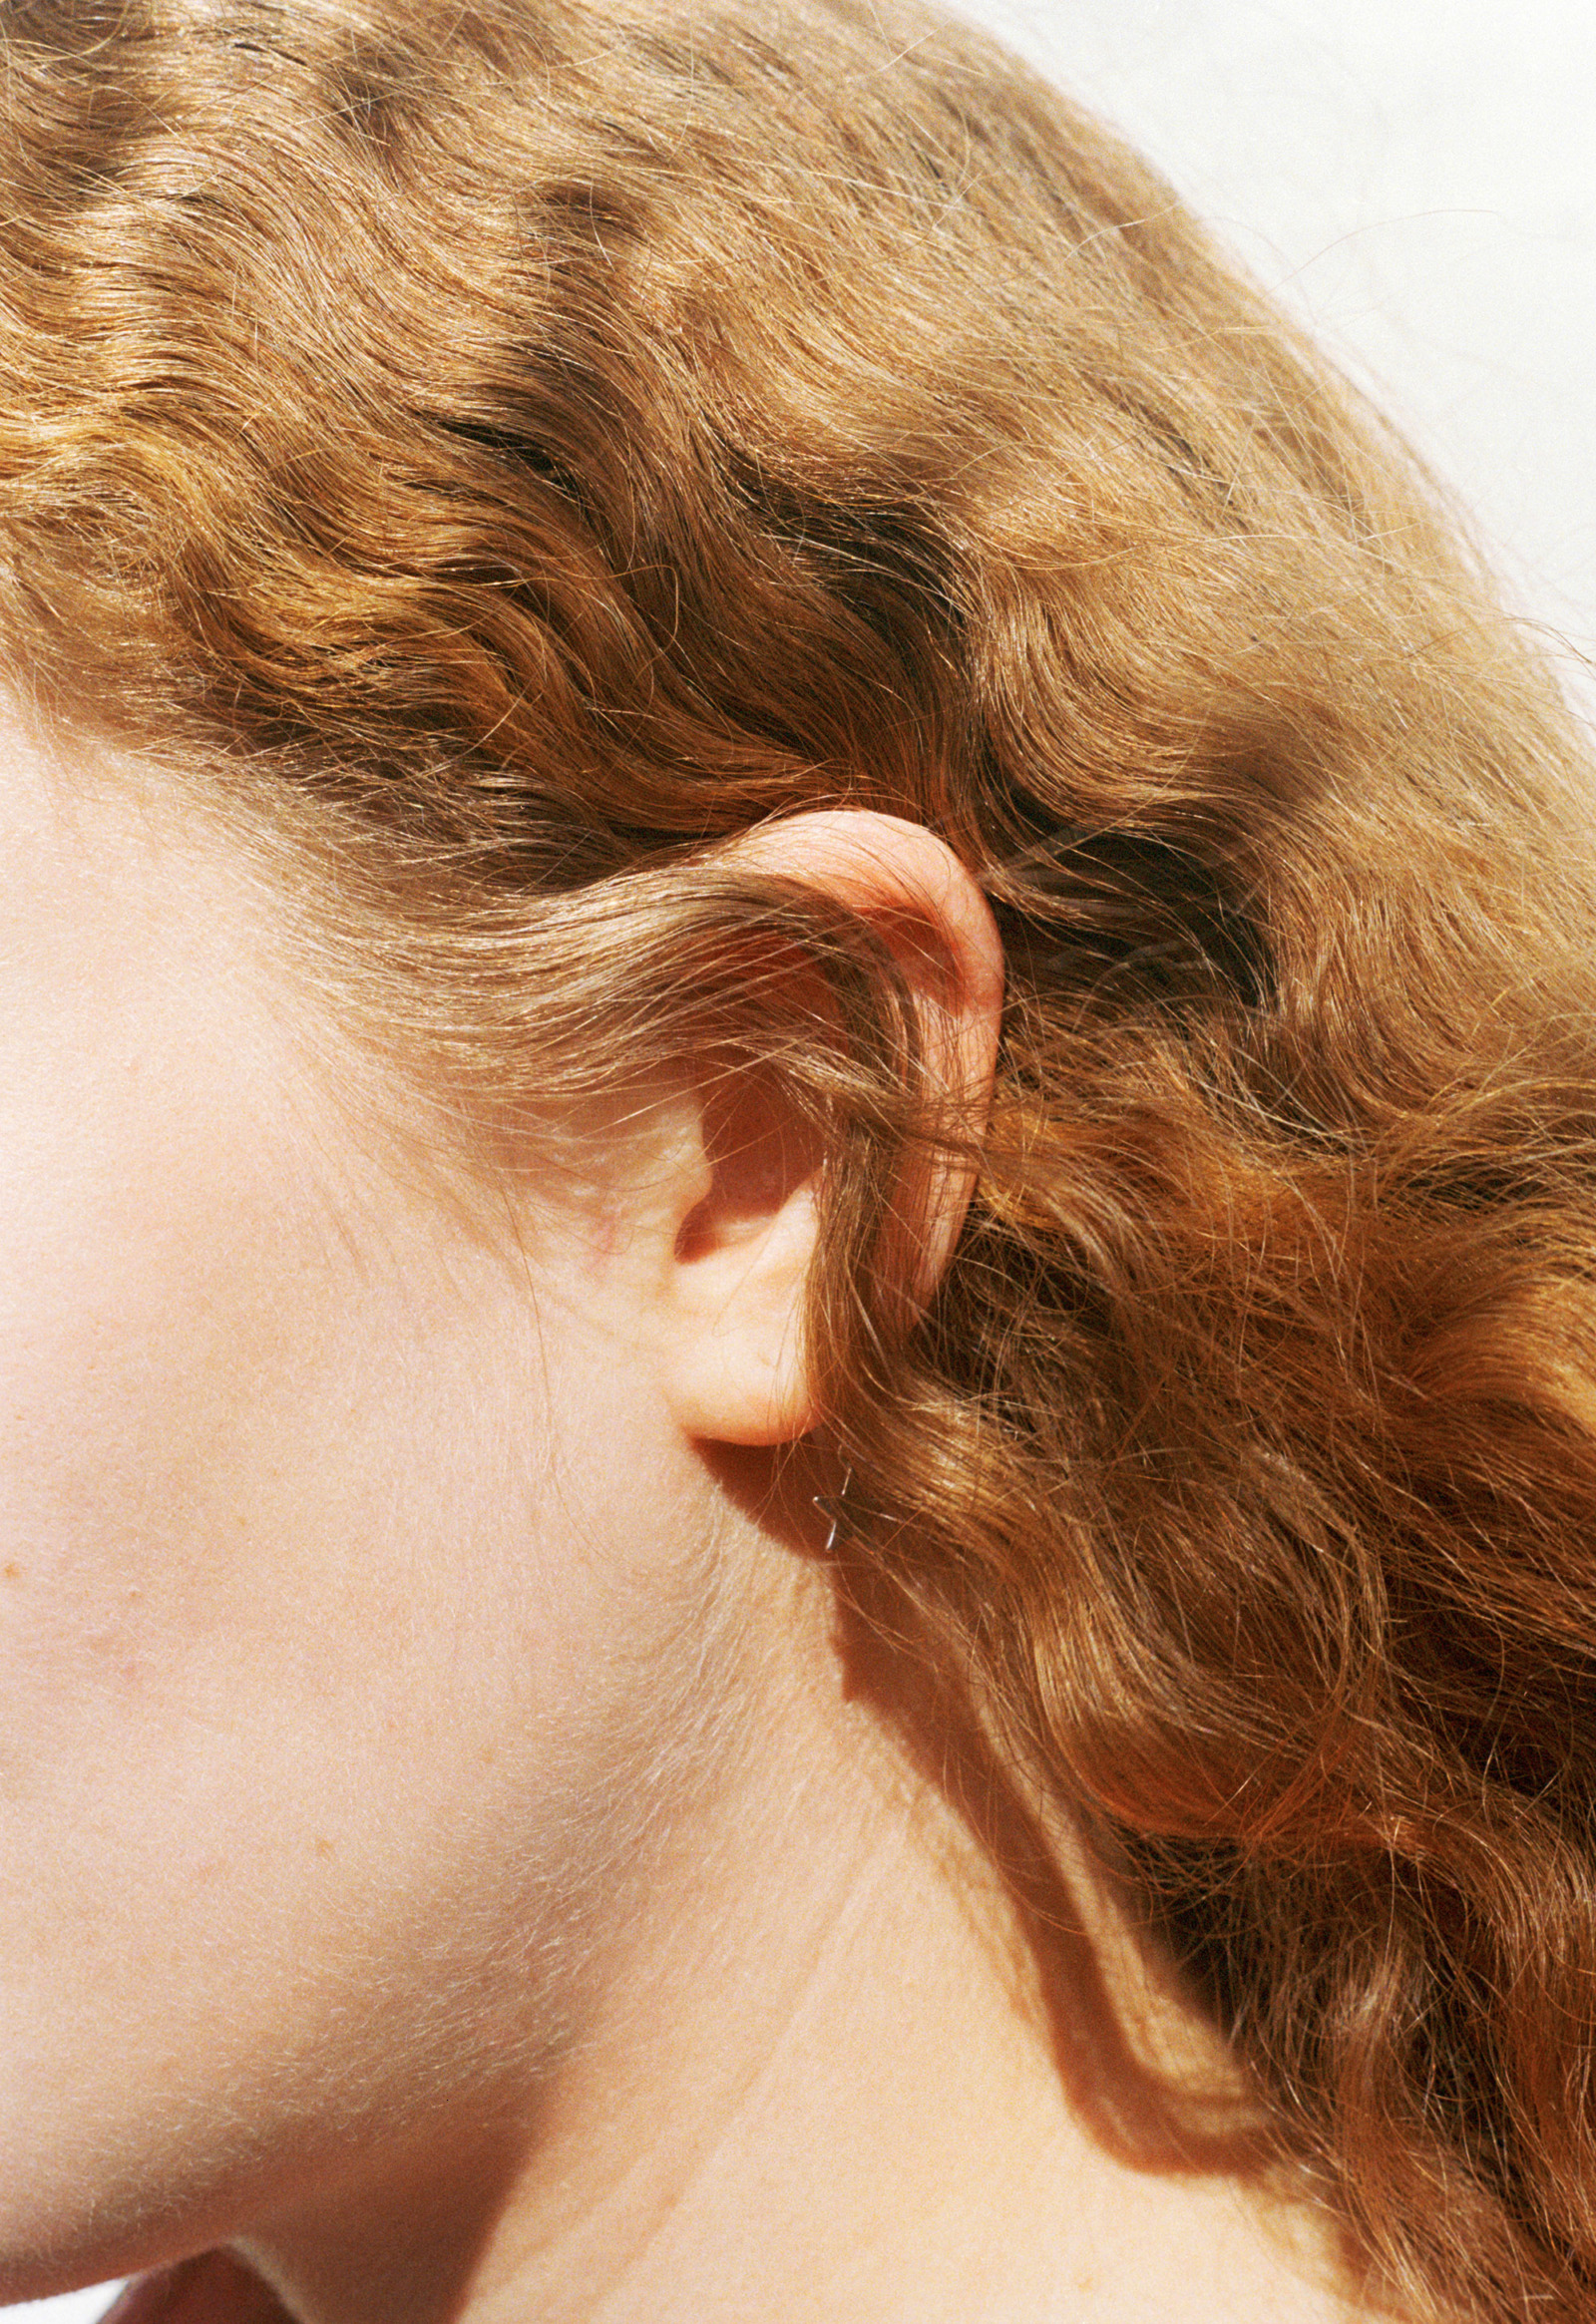 A woman's head in profile with a sweep of curly red hair that covers a gold star earring.